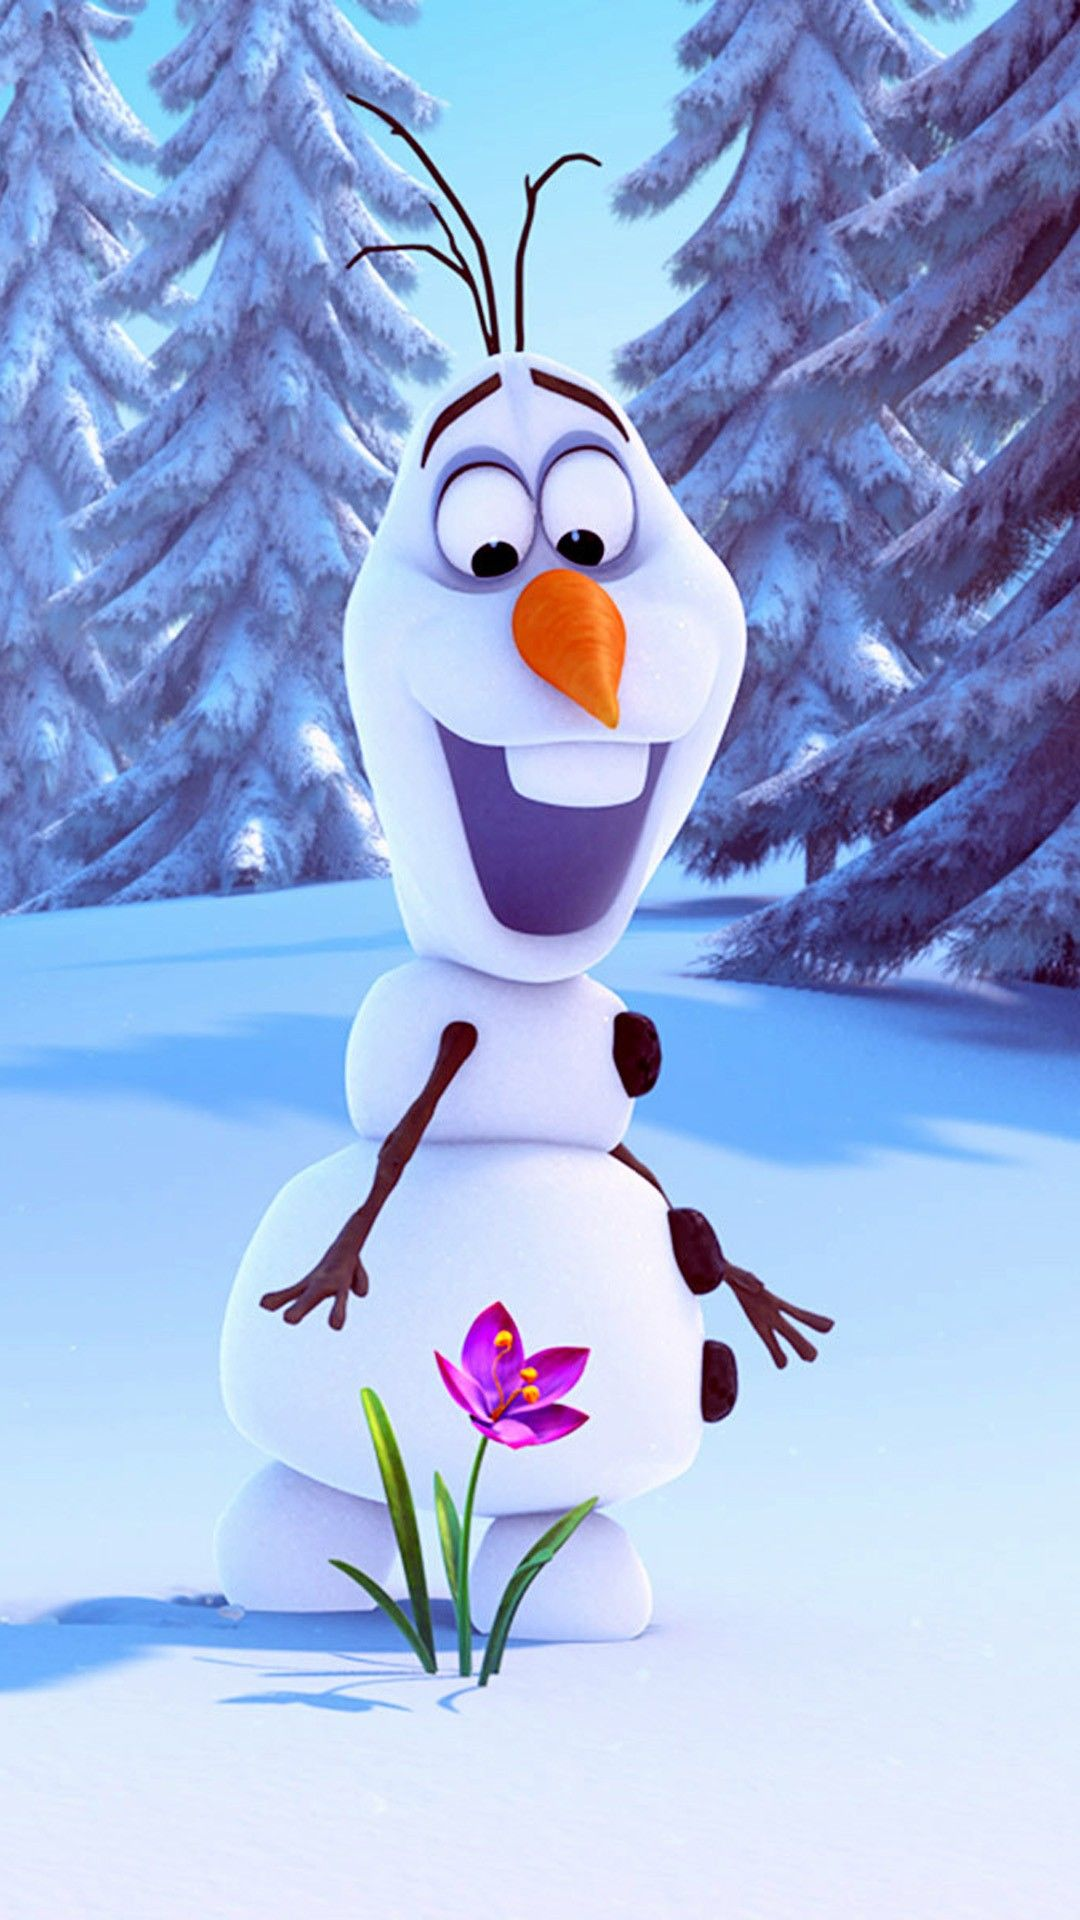 Olaf Frozen IPhone 6 Plus Wallpaper For 2014 Halloween